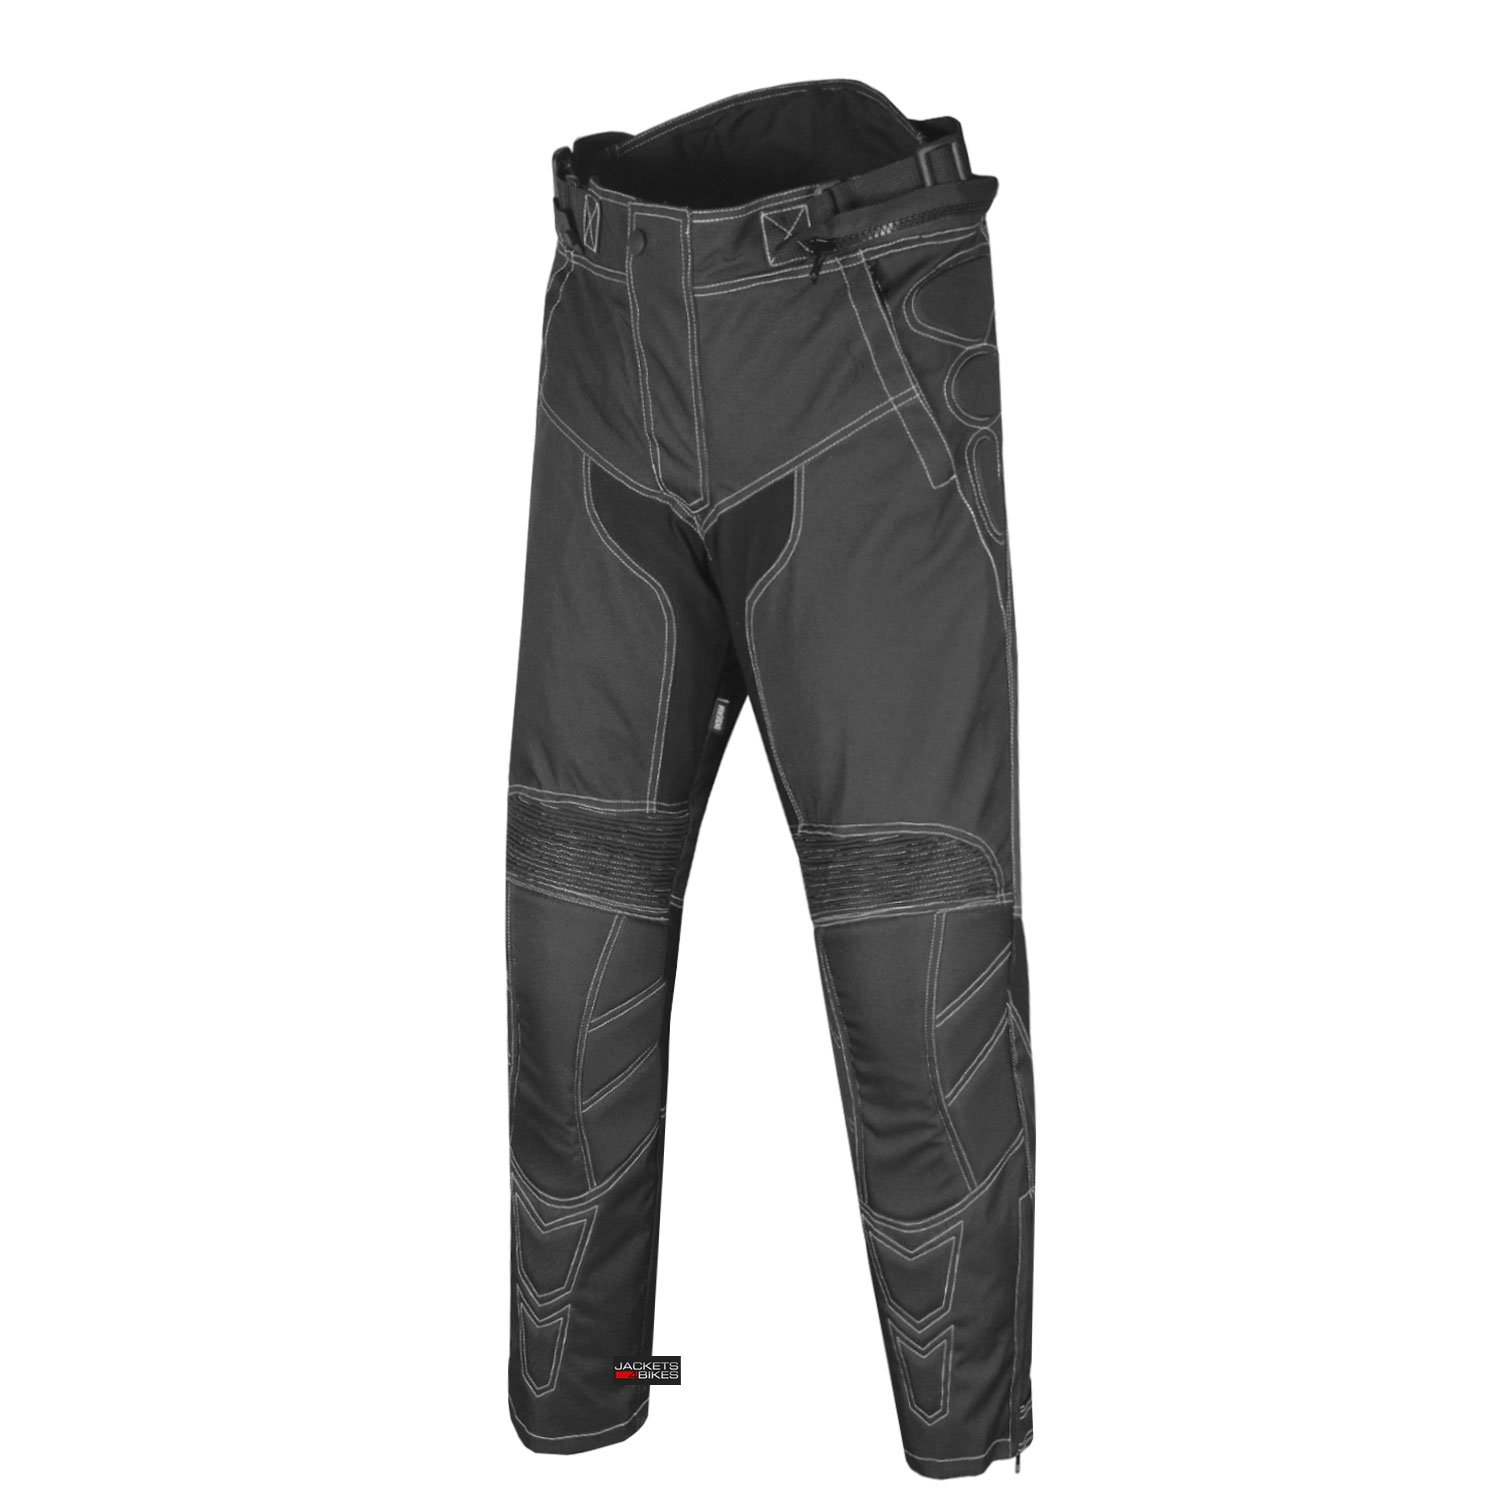 Men's Motorcycle Cordura Waterproof Touring Removable Armor Black Pants 36w 30i